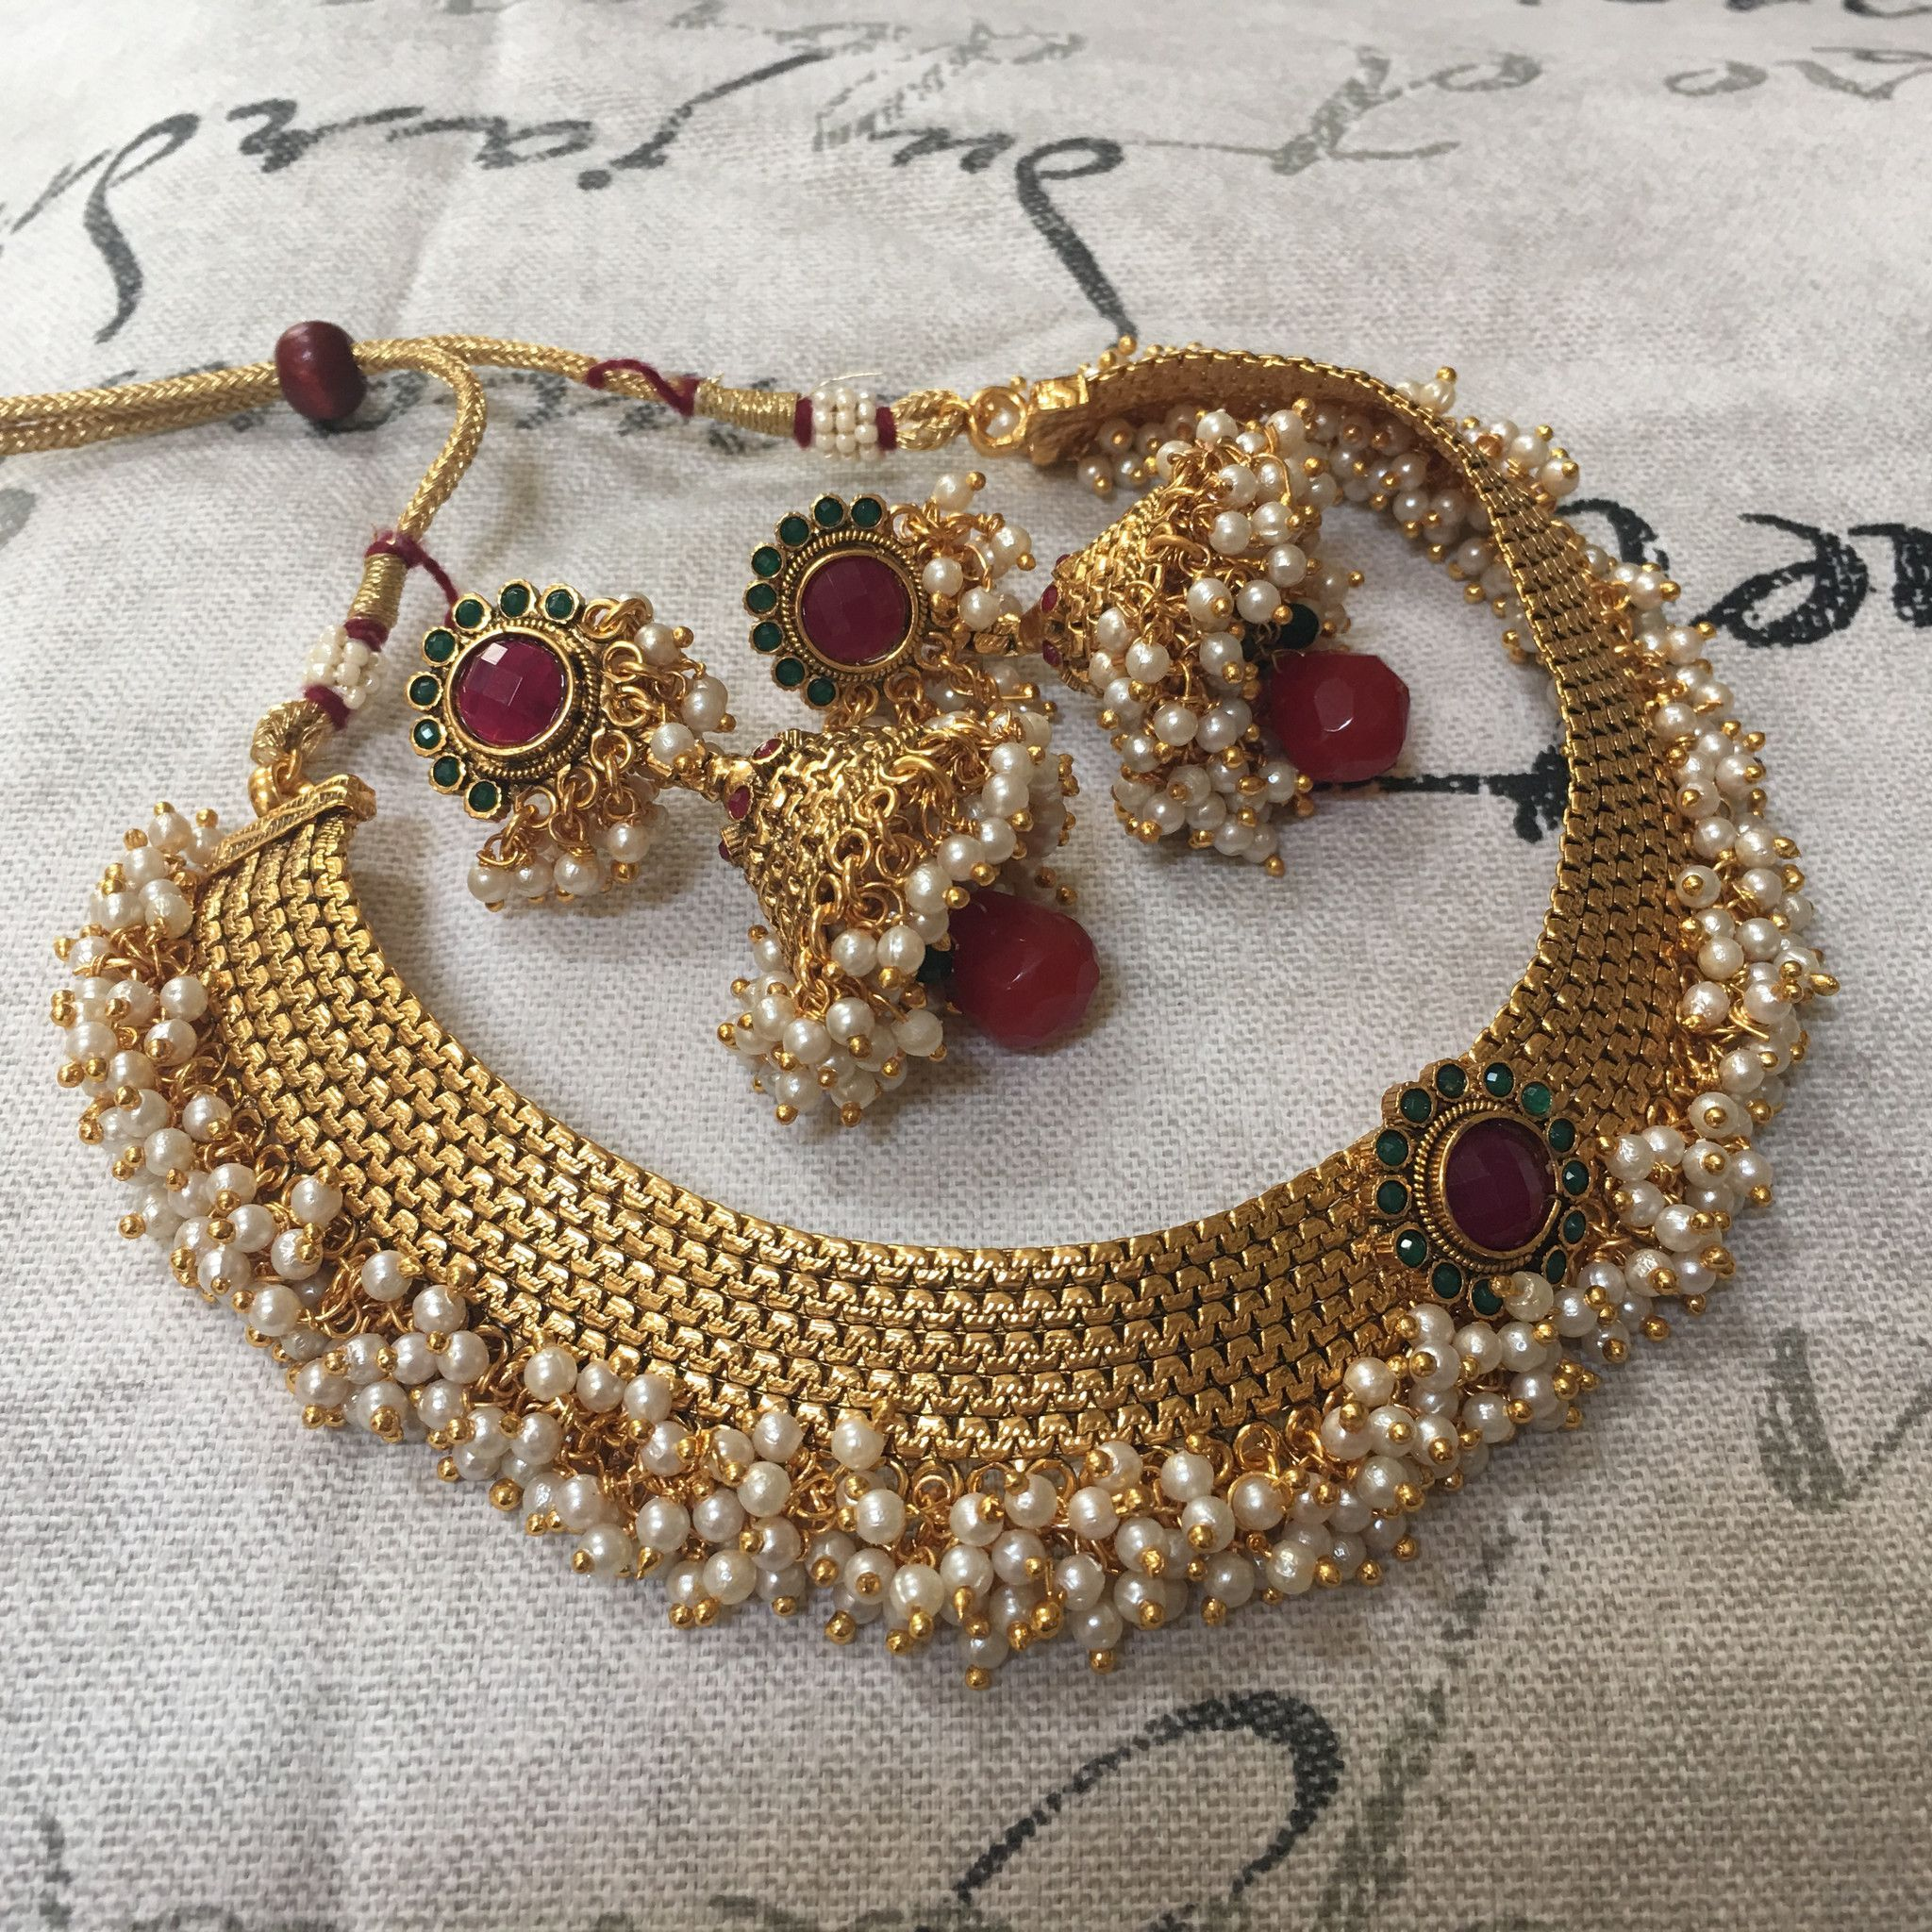 Golden fit necklace with moti and colored center flower making